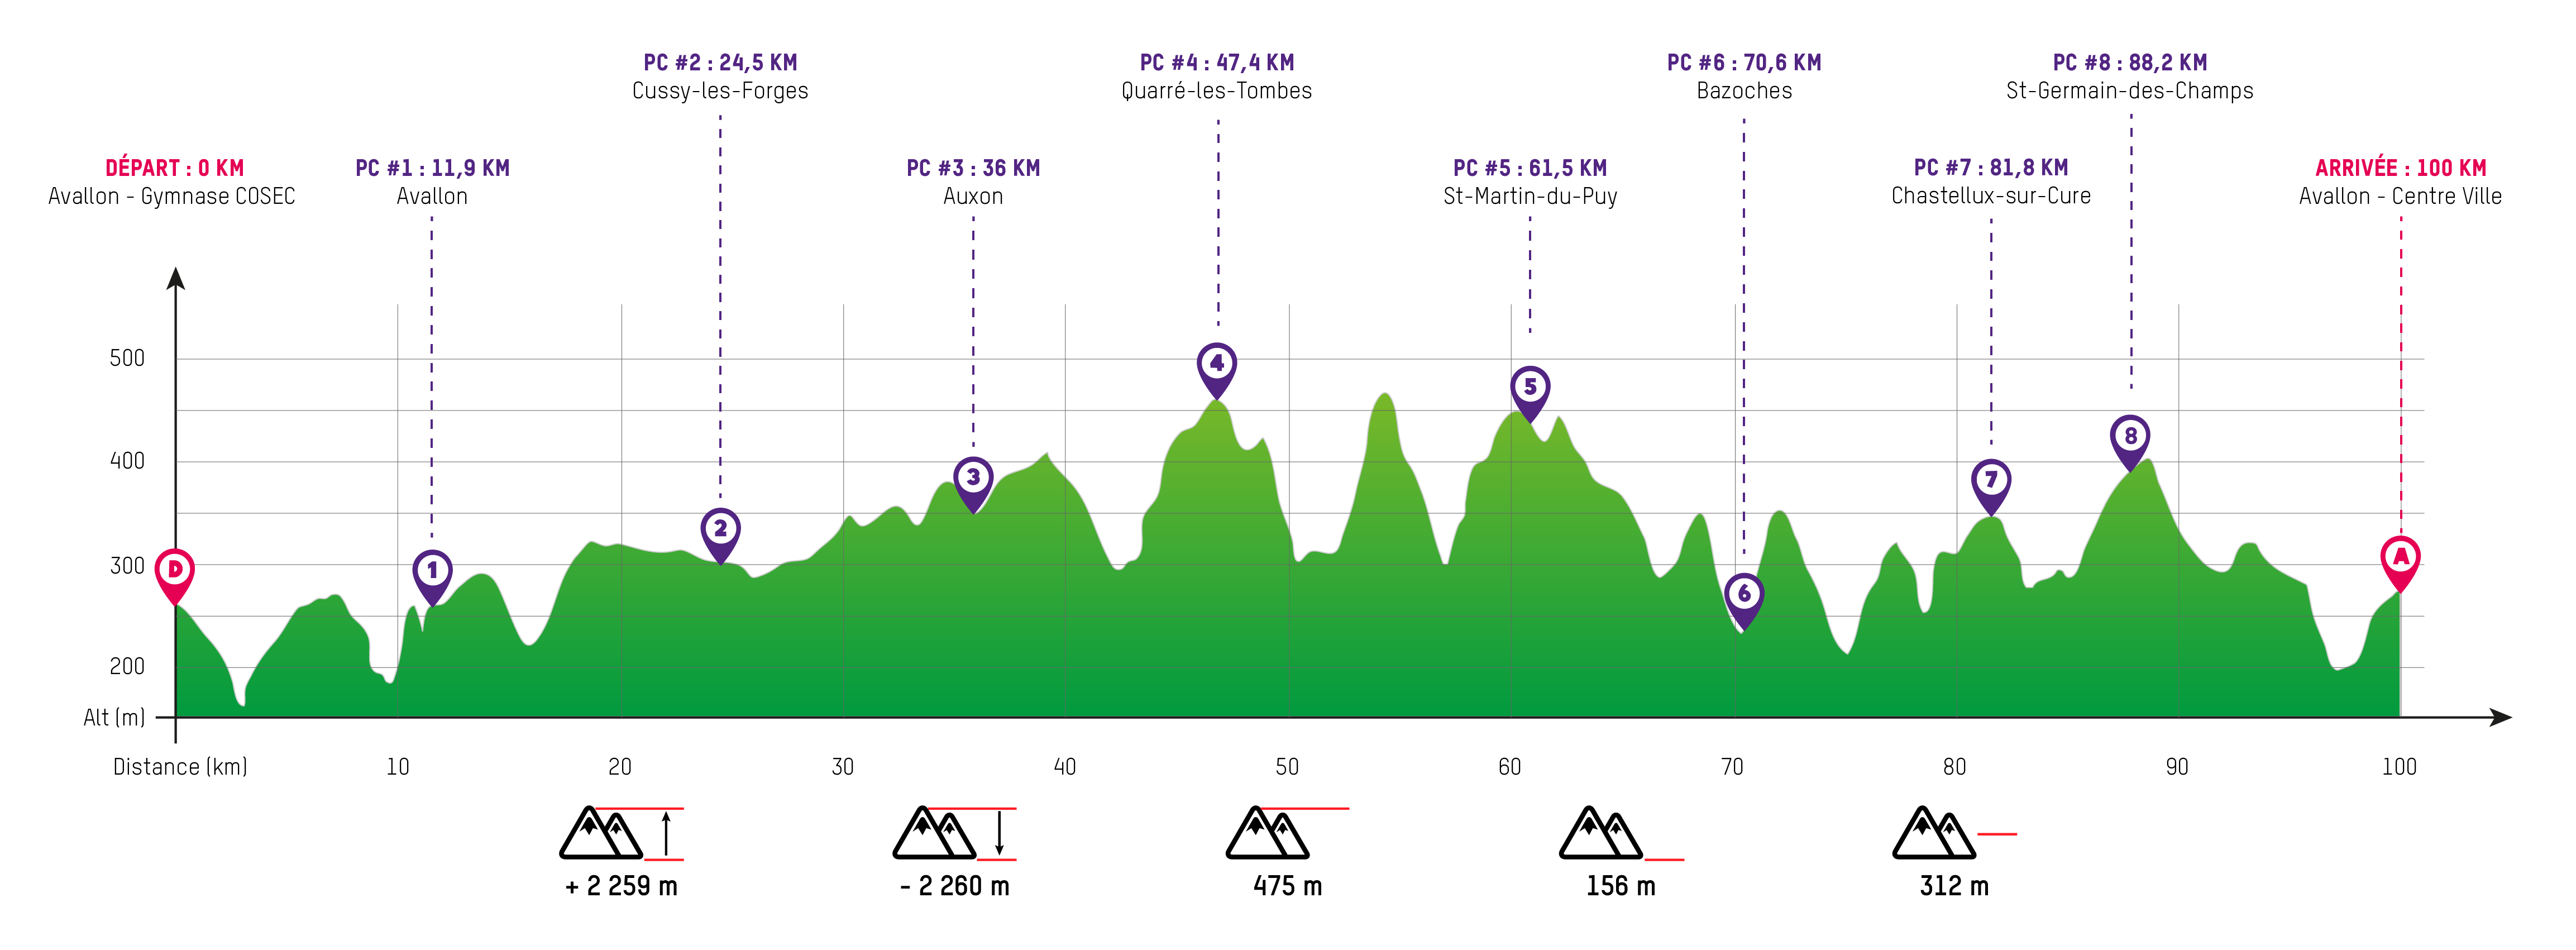 Profil Trailwalker Avallon 2019